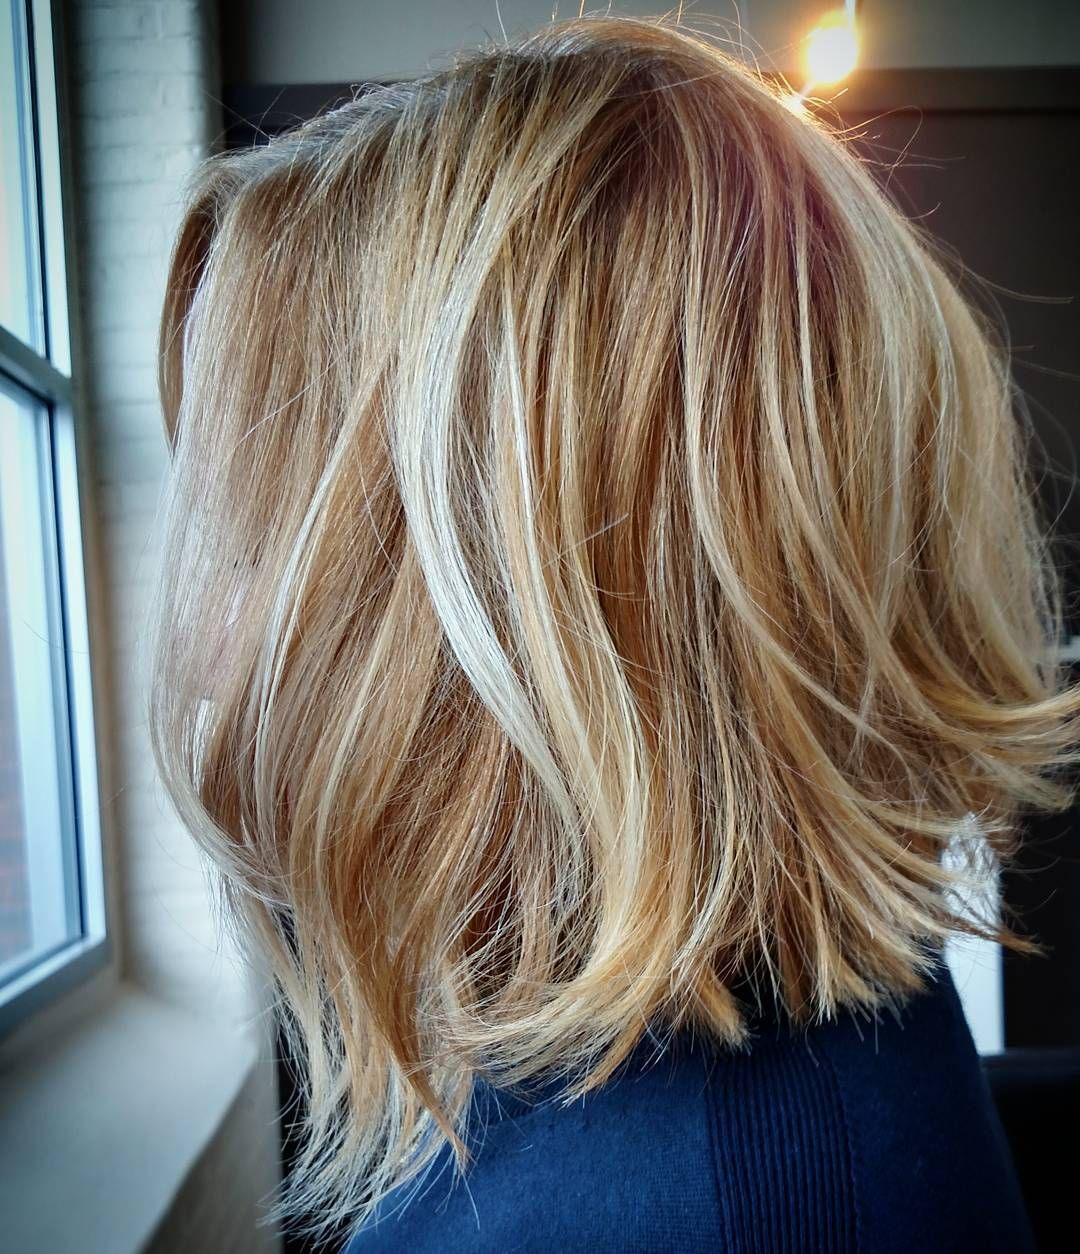 Blonde Unstructured Bob Hair Styles Bob Hairstyles Red Blonde Hair